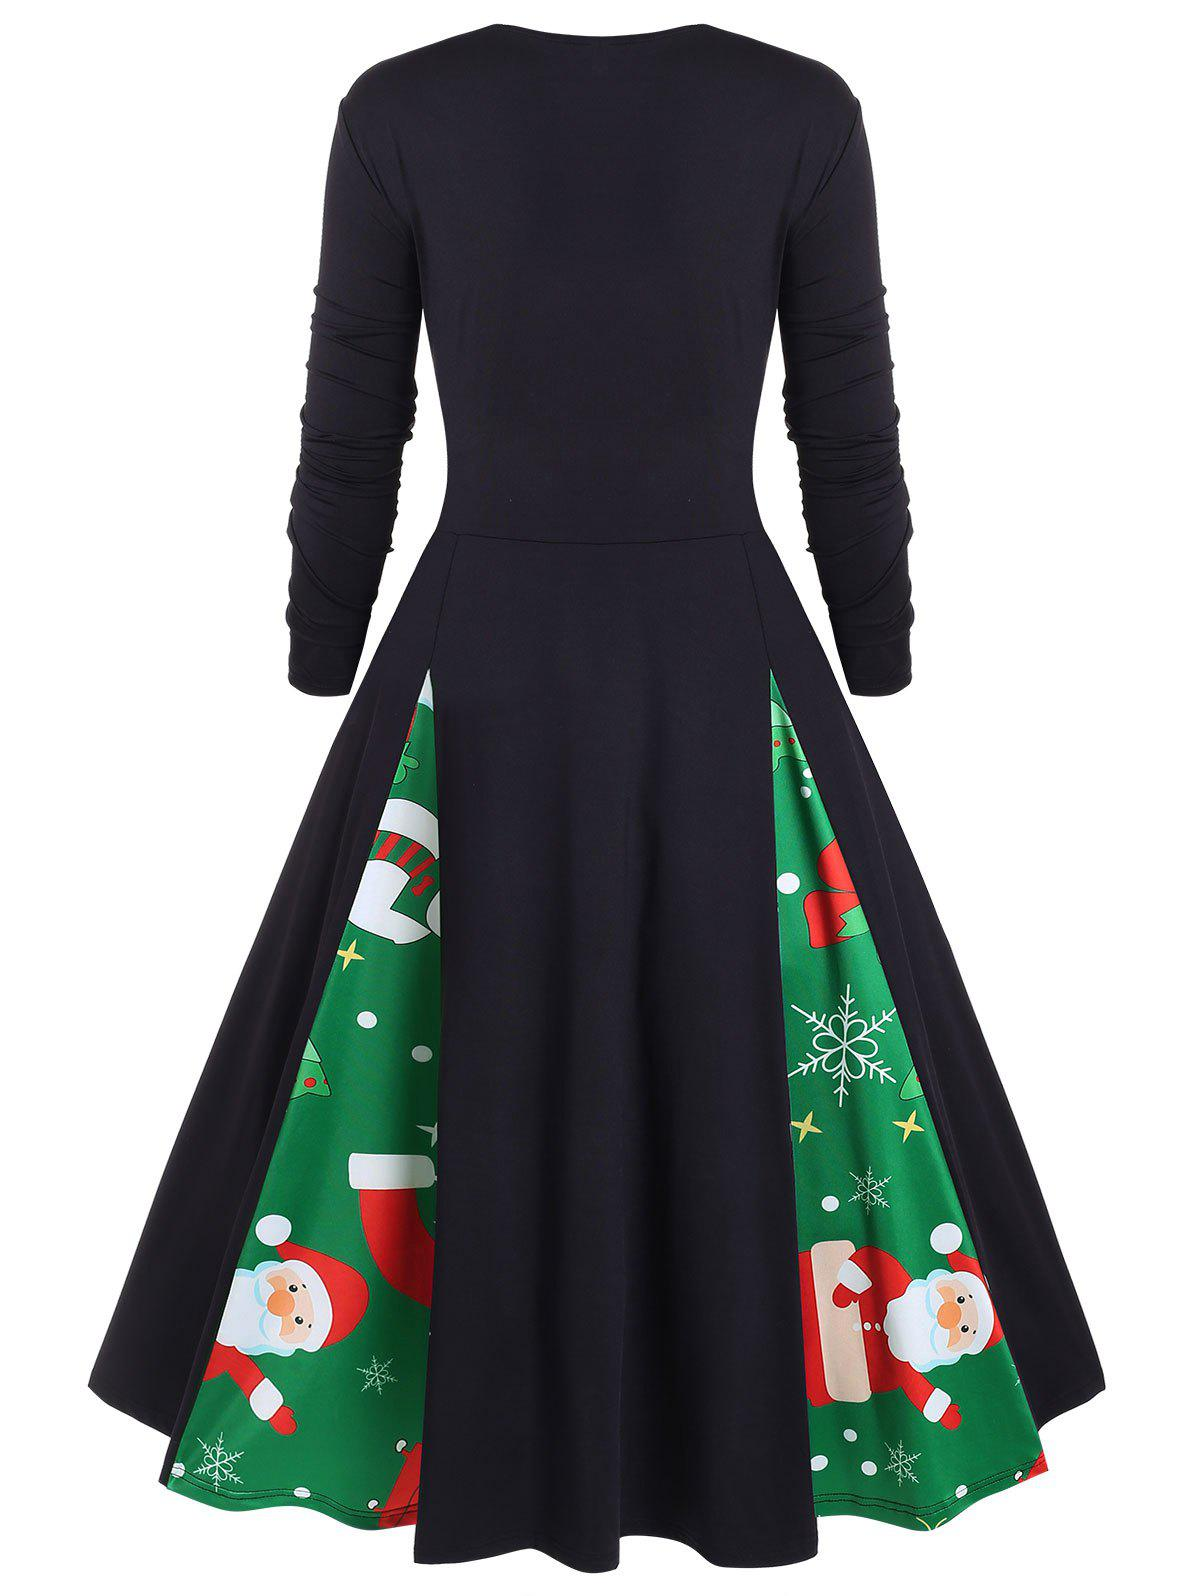 Plus Size Vintage Christmas Printed Pin Up Dress - CLOVER GREEN 5X